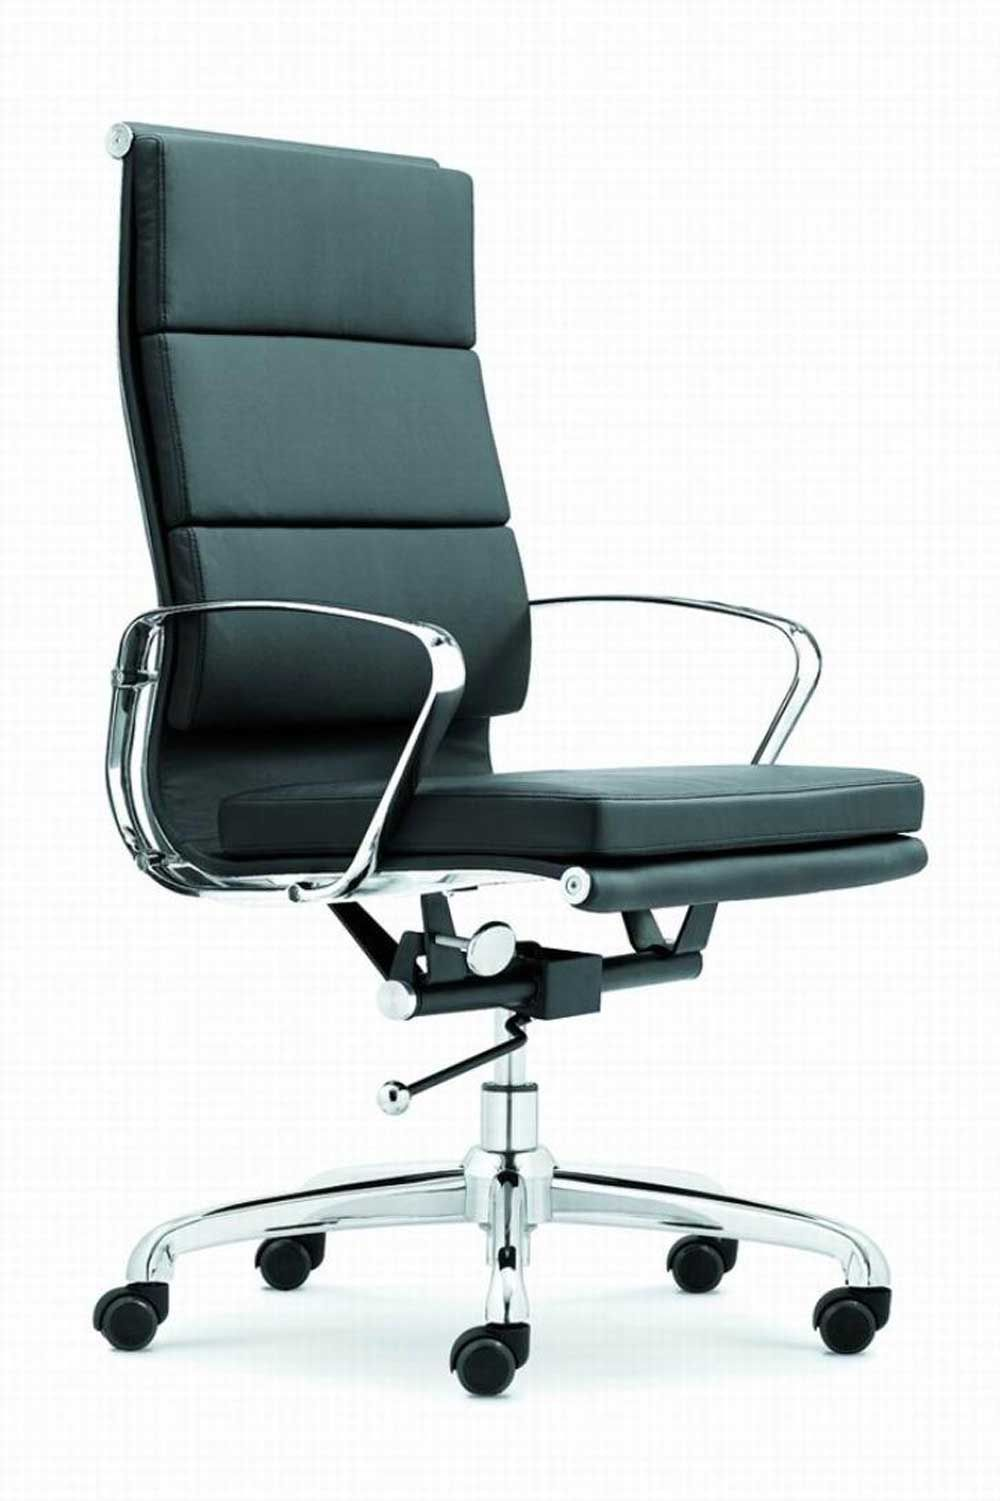 Most Comfortable Computer Chair With High Back Comfortable Computer Chair Office Chair Computer Chair